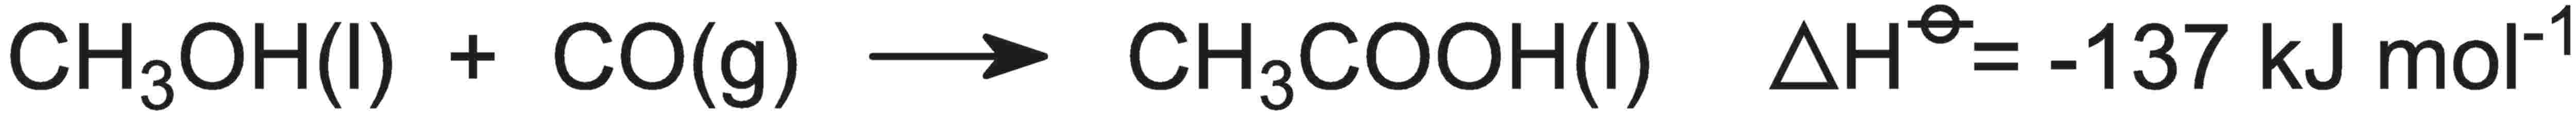 Ethanoic acid acetic acid manufacture of ethanoic acid acetic acid biocorpaavc